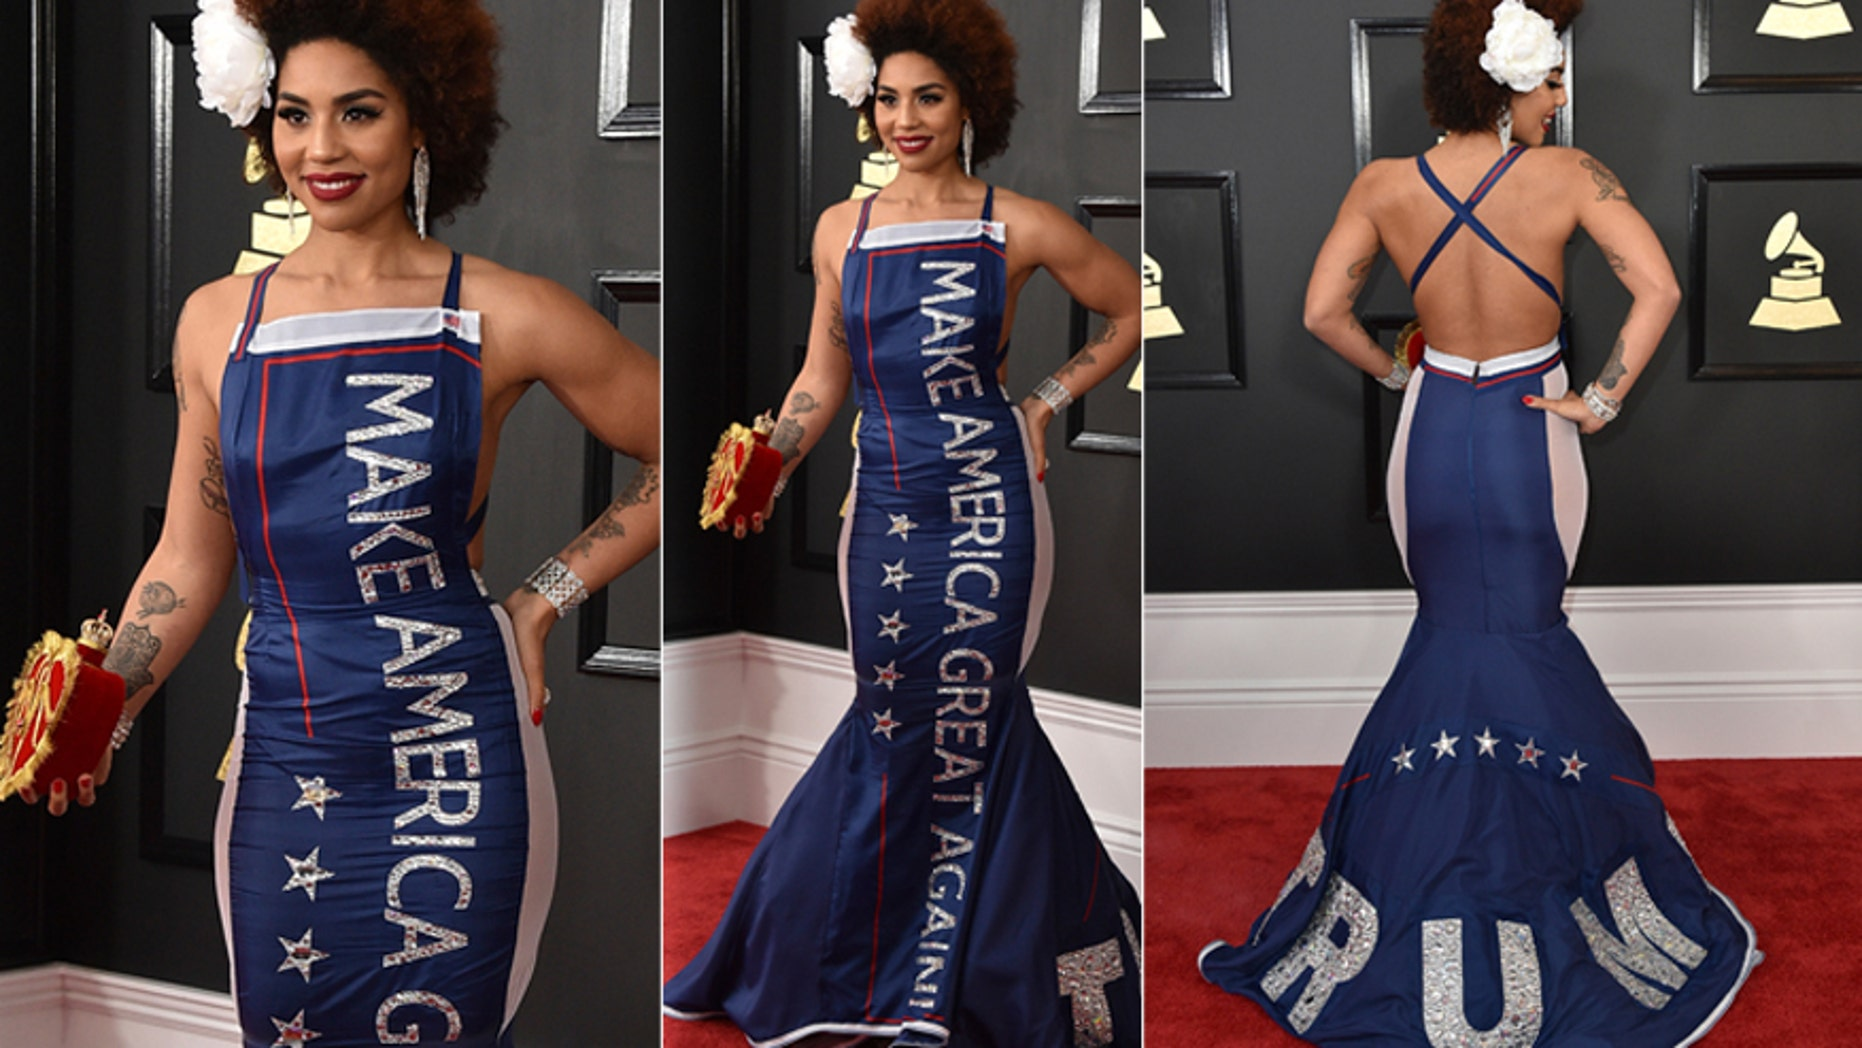 Joy Villa: Video Shows Joy Villa Smacking A Man On The Bottom After